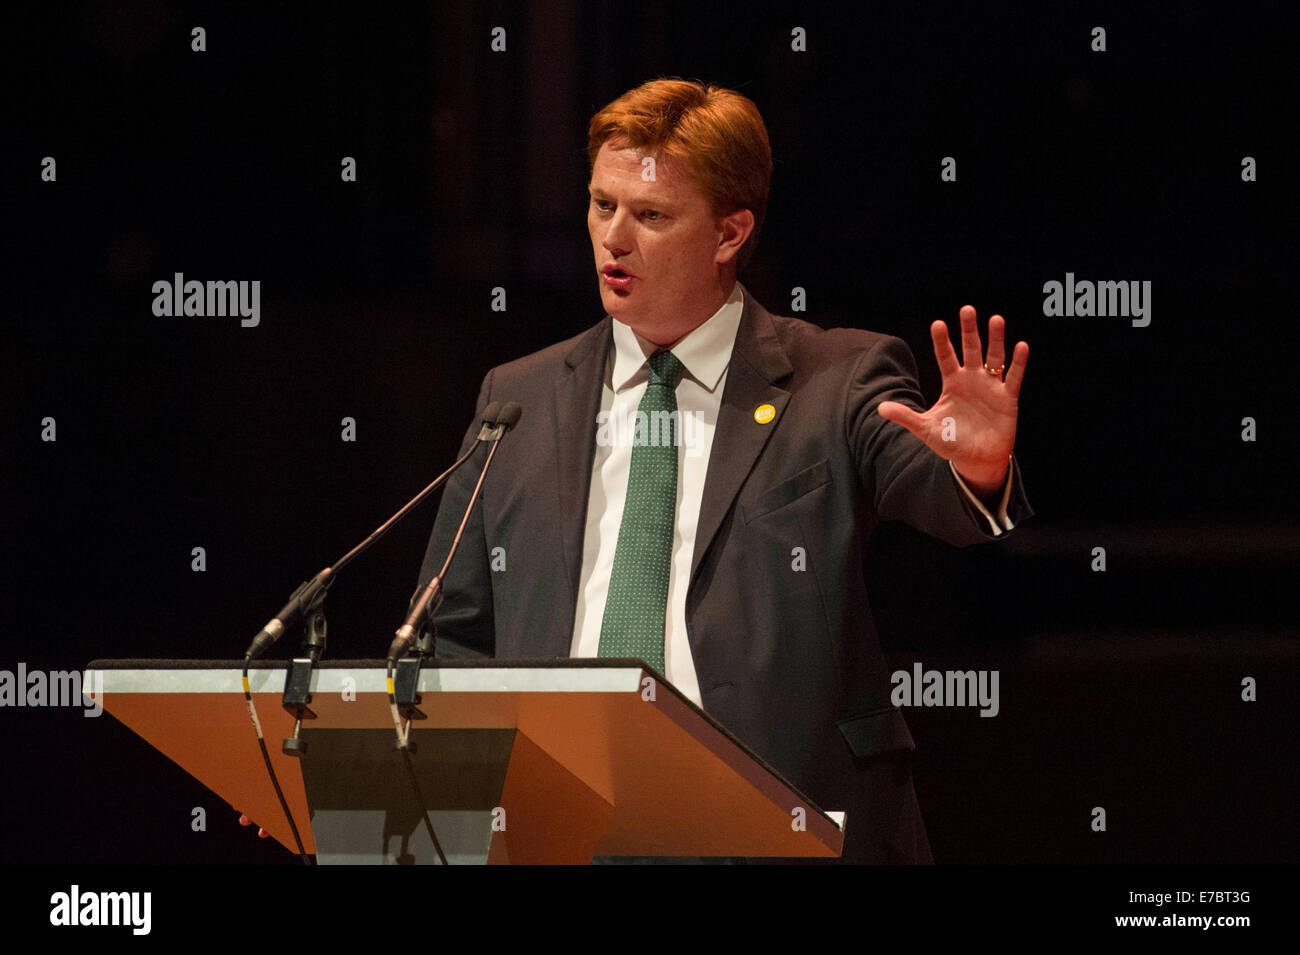 Edinburgh, Scotland, UK. 12th September, 2014. The Peoples Question Time at the Usher Hall with Danny Alexander - Stock Image